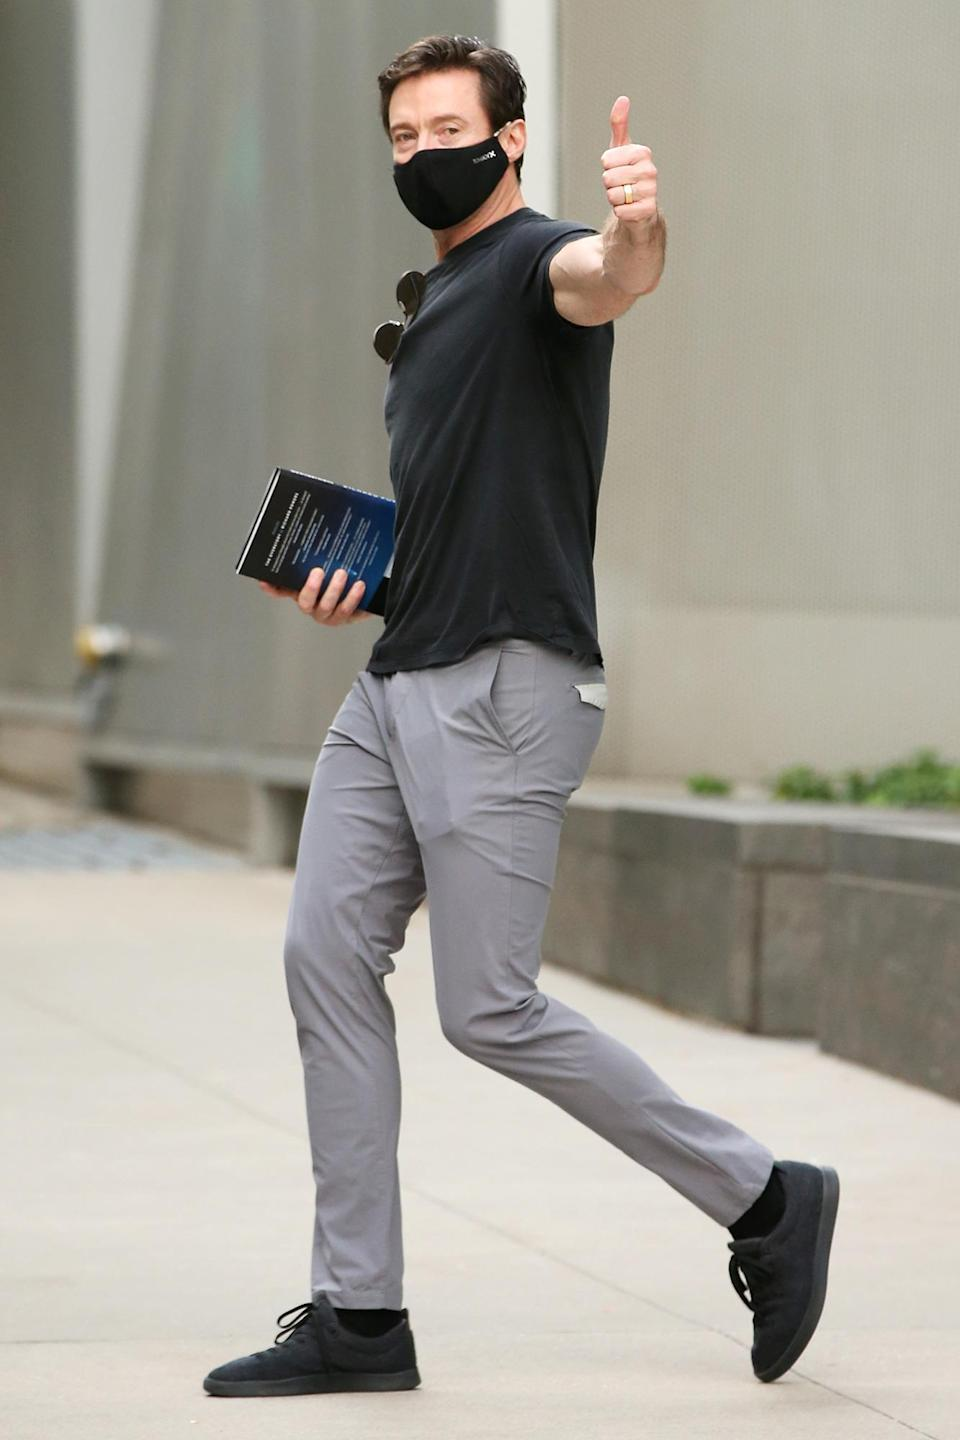 <p>Hugh Jackman flashes a thumbs up while out and about on his birthday on Oct. 12 in N.Y.C. </p>